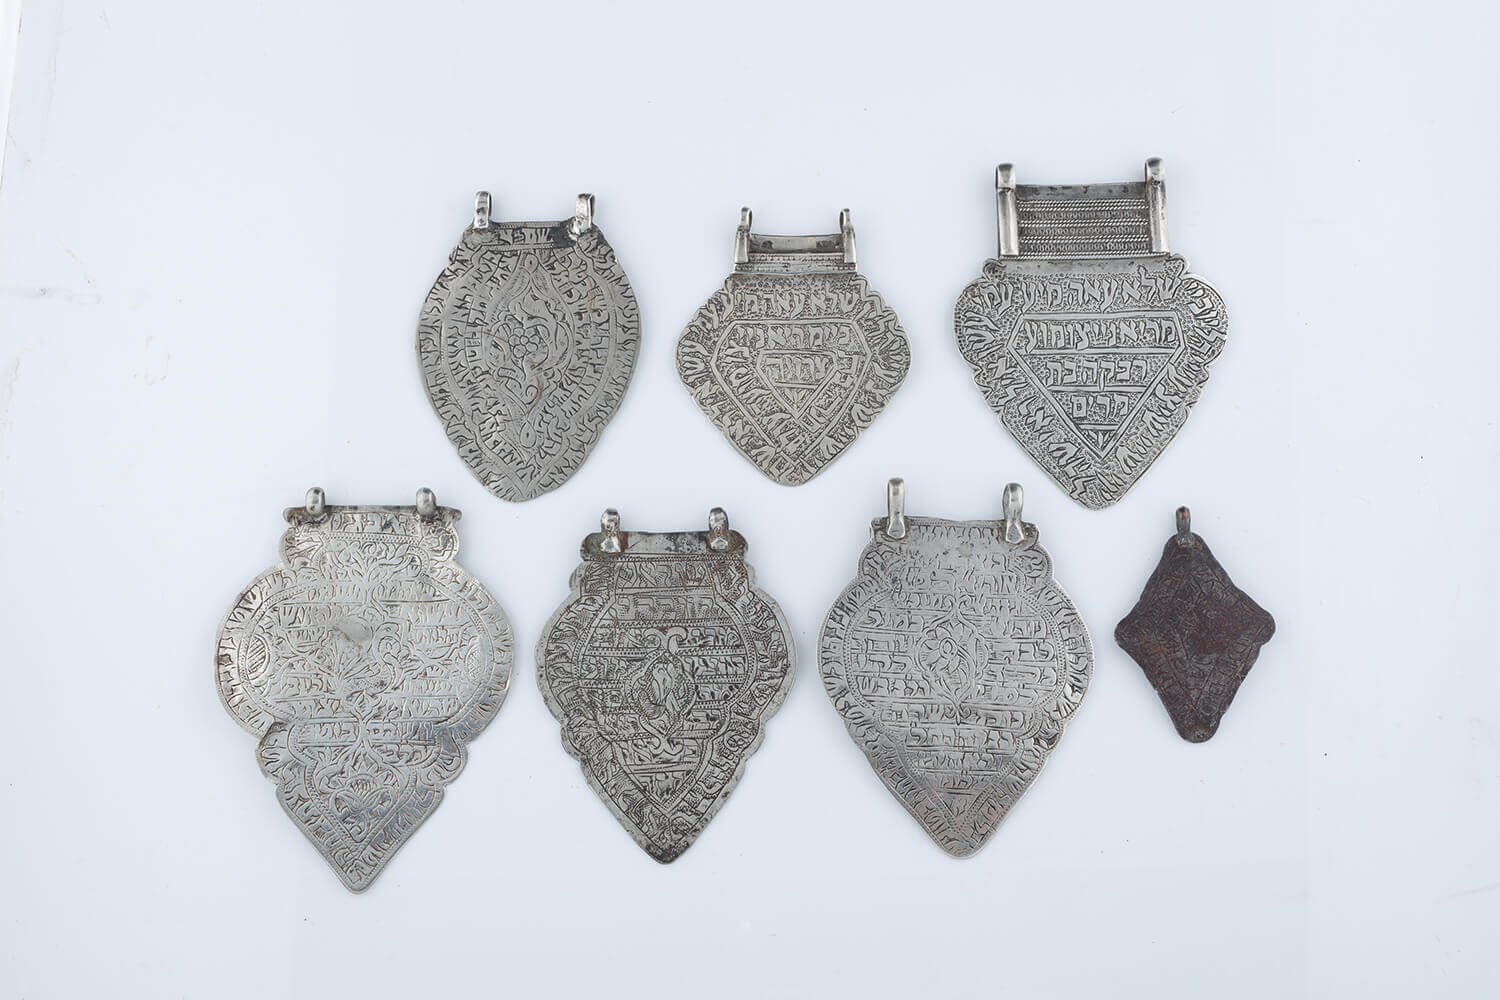 029. A GROUP OF SEVEN HEART SHAPED AMULETS